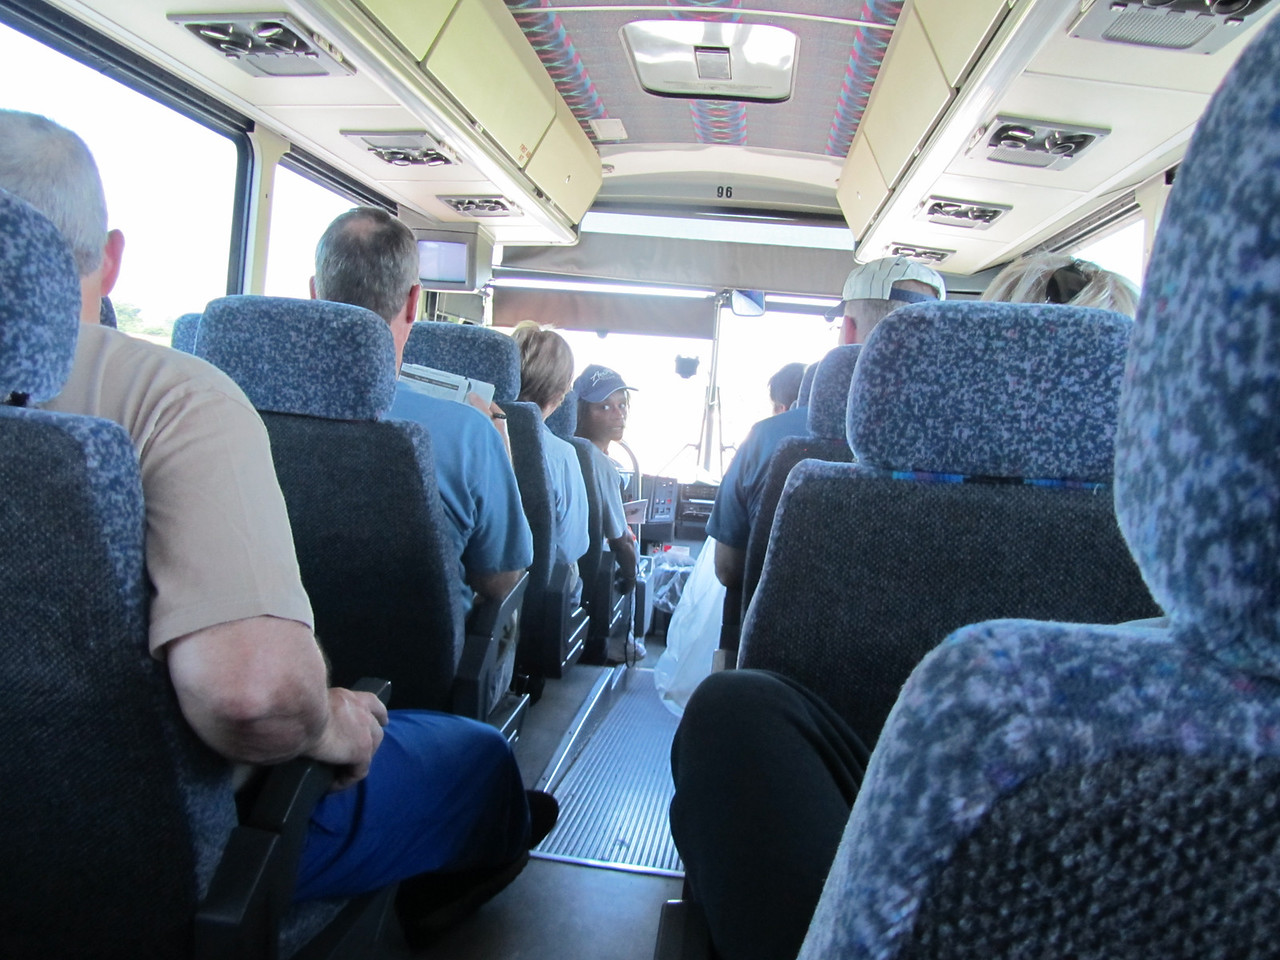 Let the adventure begin! Riding the tour bus from Albany to Buffalo.